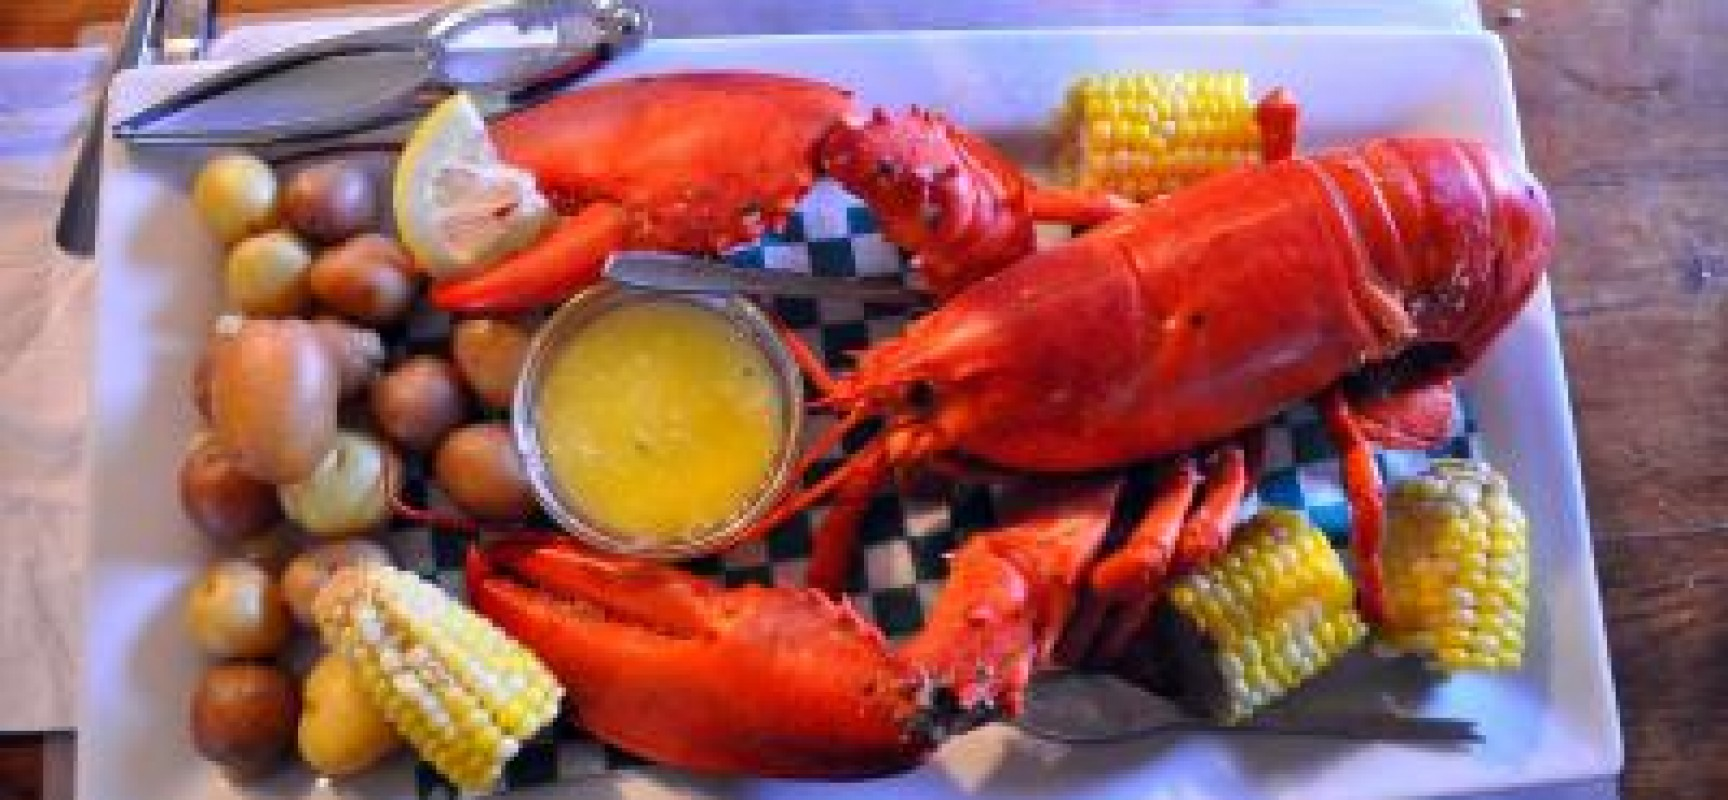 6 Top Nutritional Benefits of Lobsters You Should Know